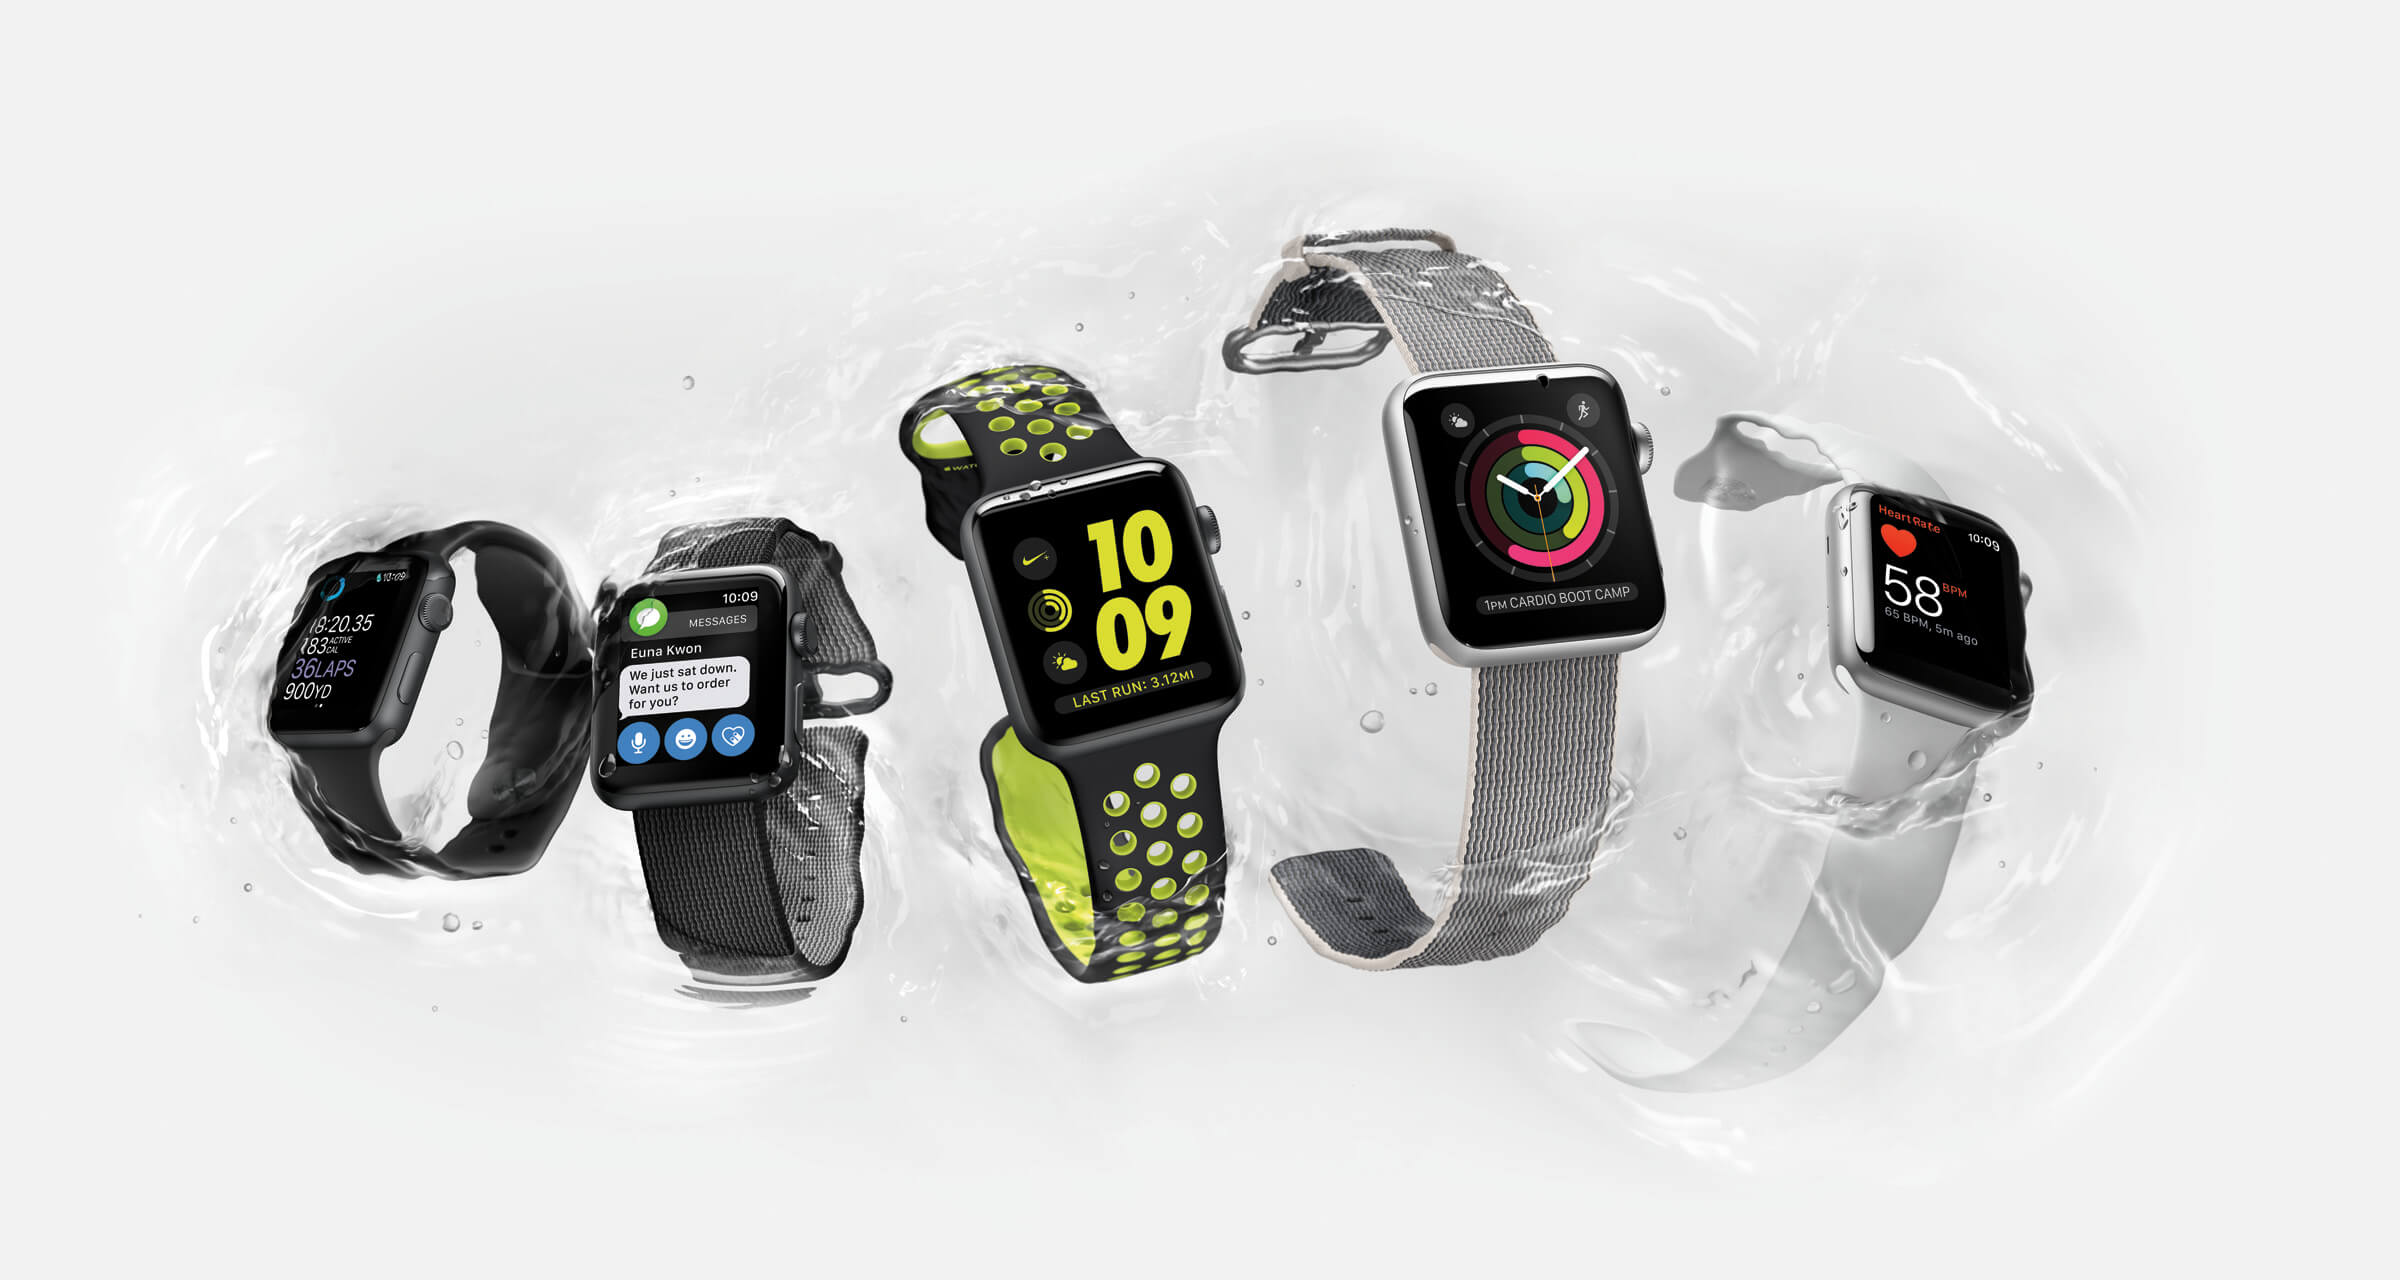 Apple Announce Apple Watch Series 2 Smart Watch